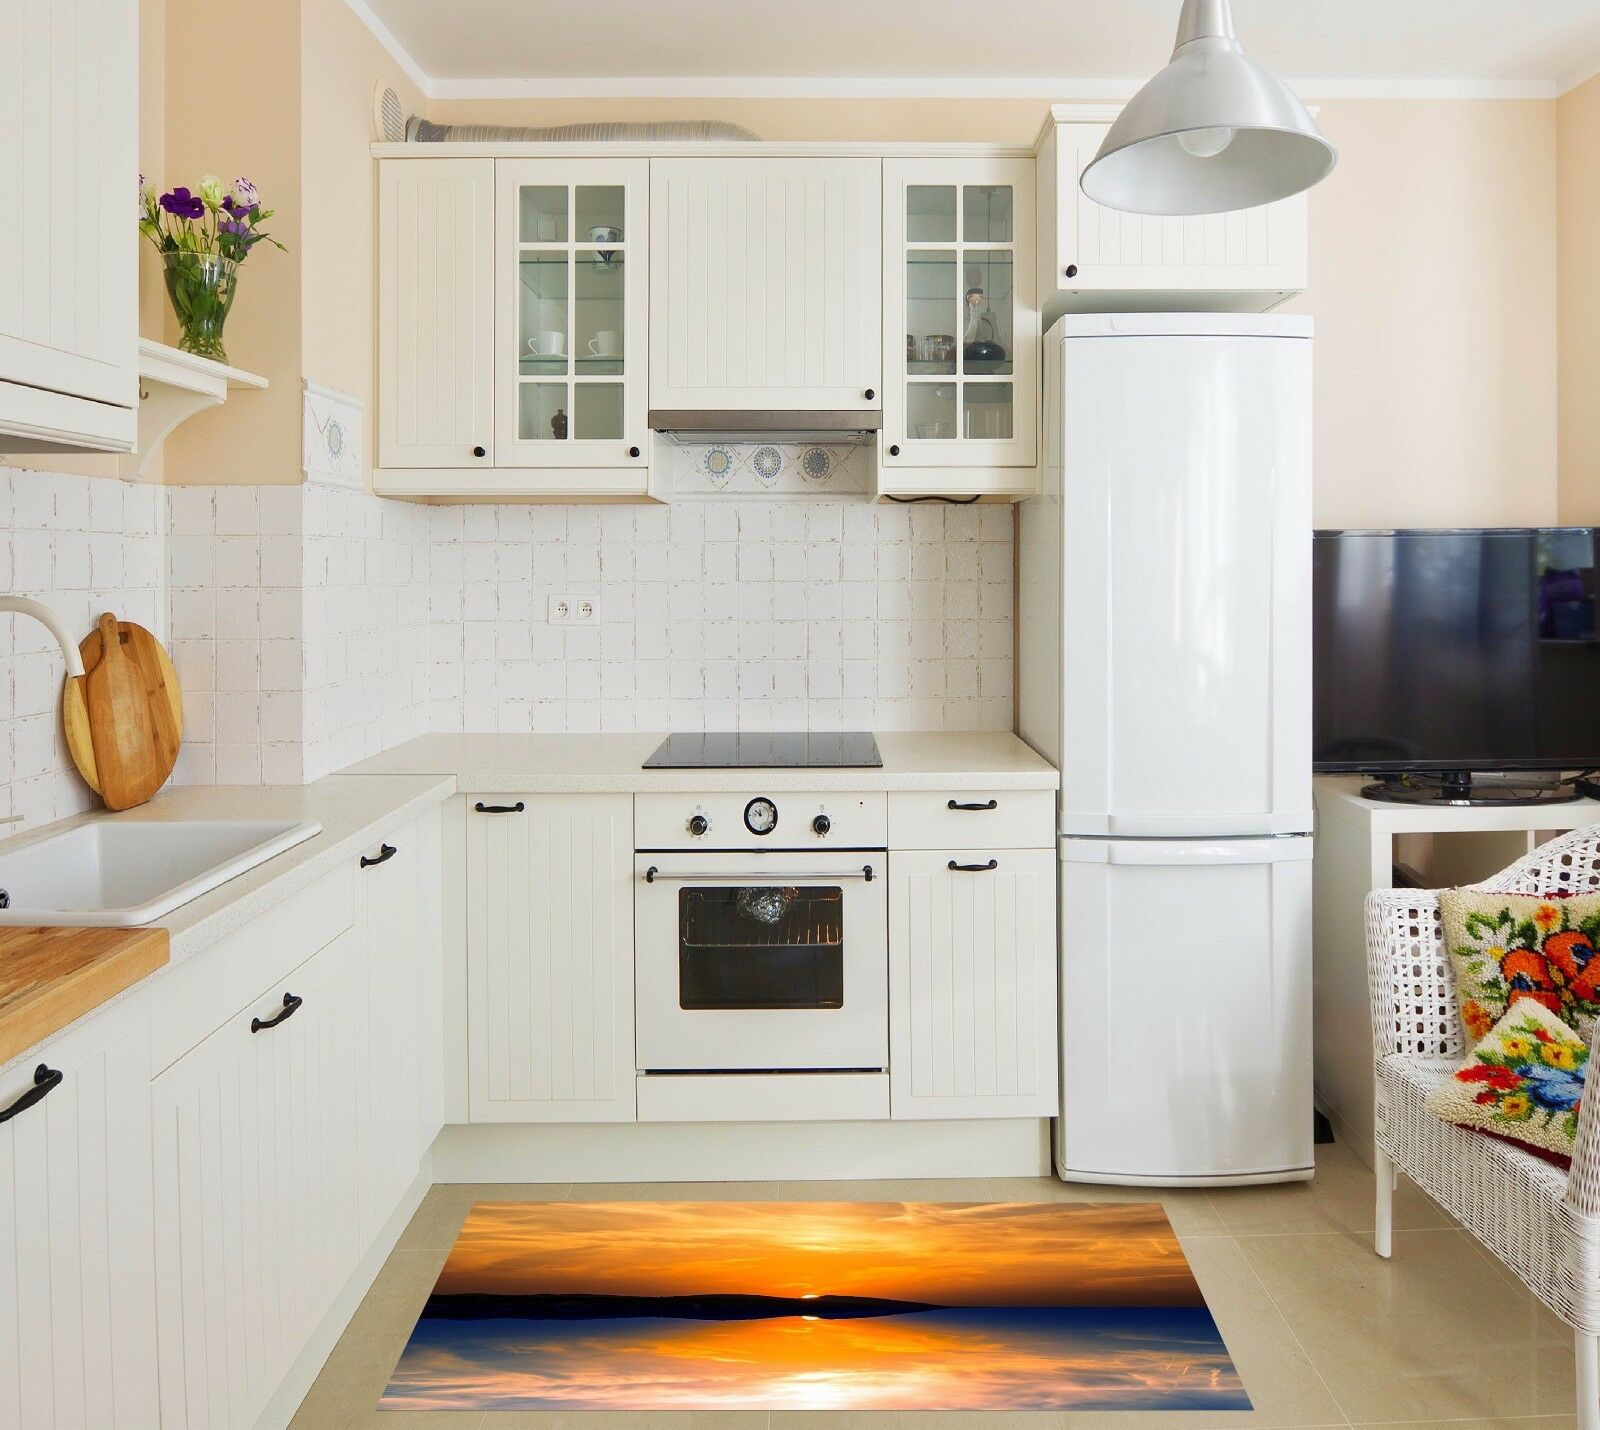 3D Dusk Sea 627 Kitchen Mat Floor Murals Wall Print Wall AJ WALLPAPER AU Kyra